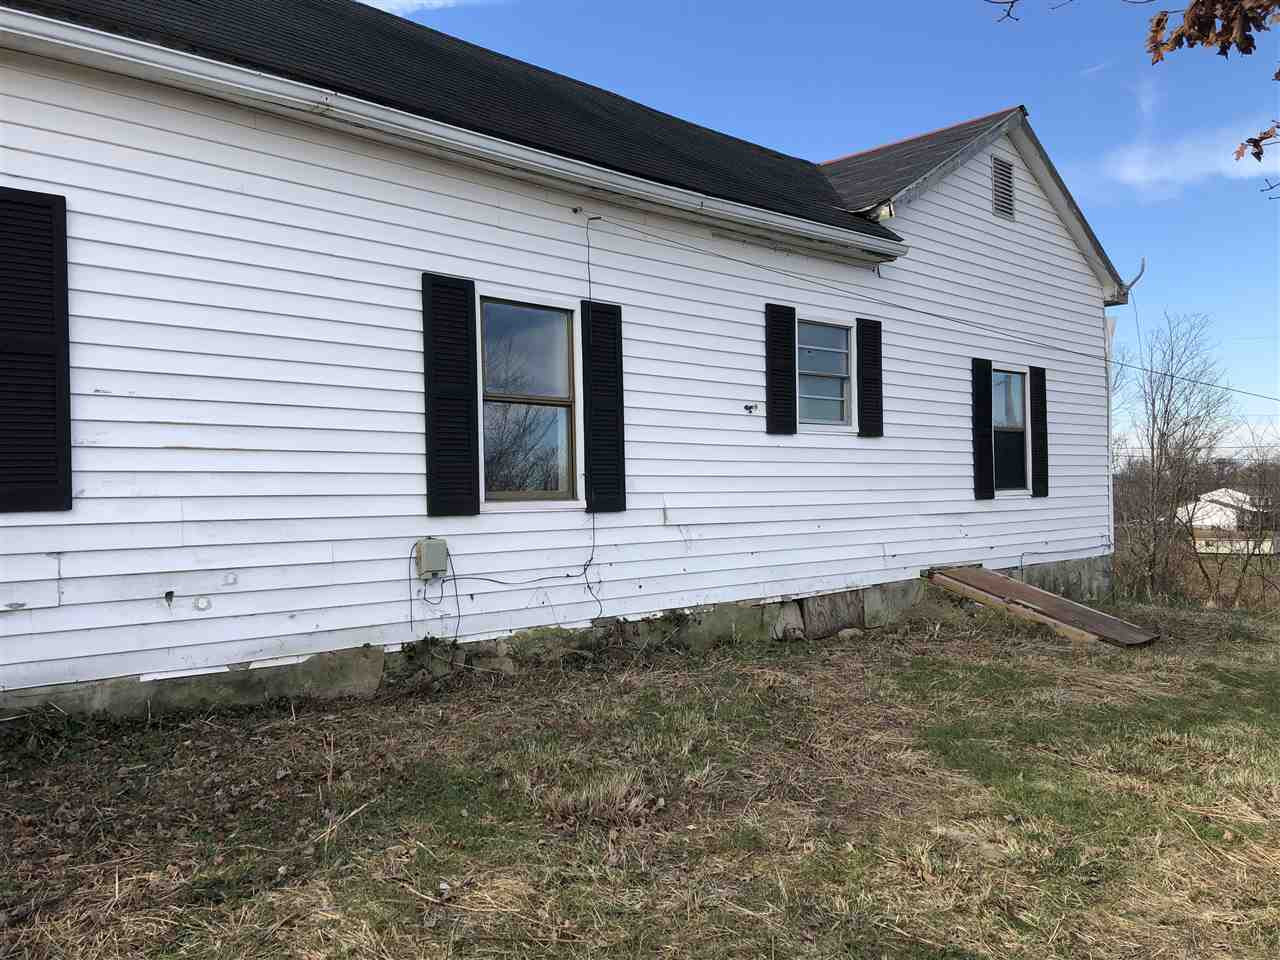 Photo 2 for 235 Stringtown Rd Corinth, KY 41010